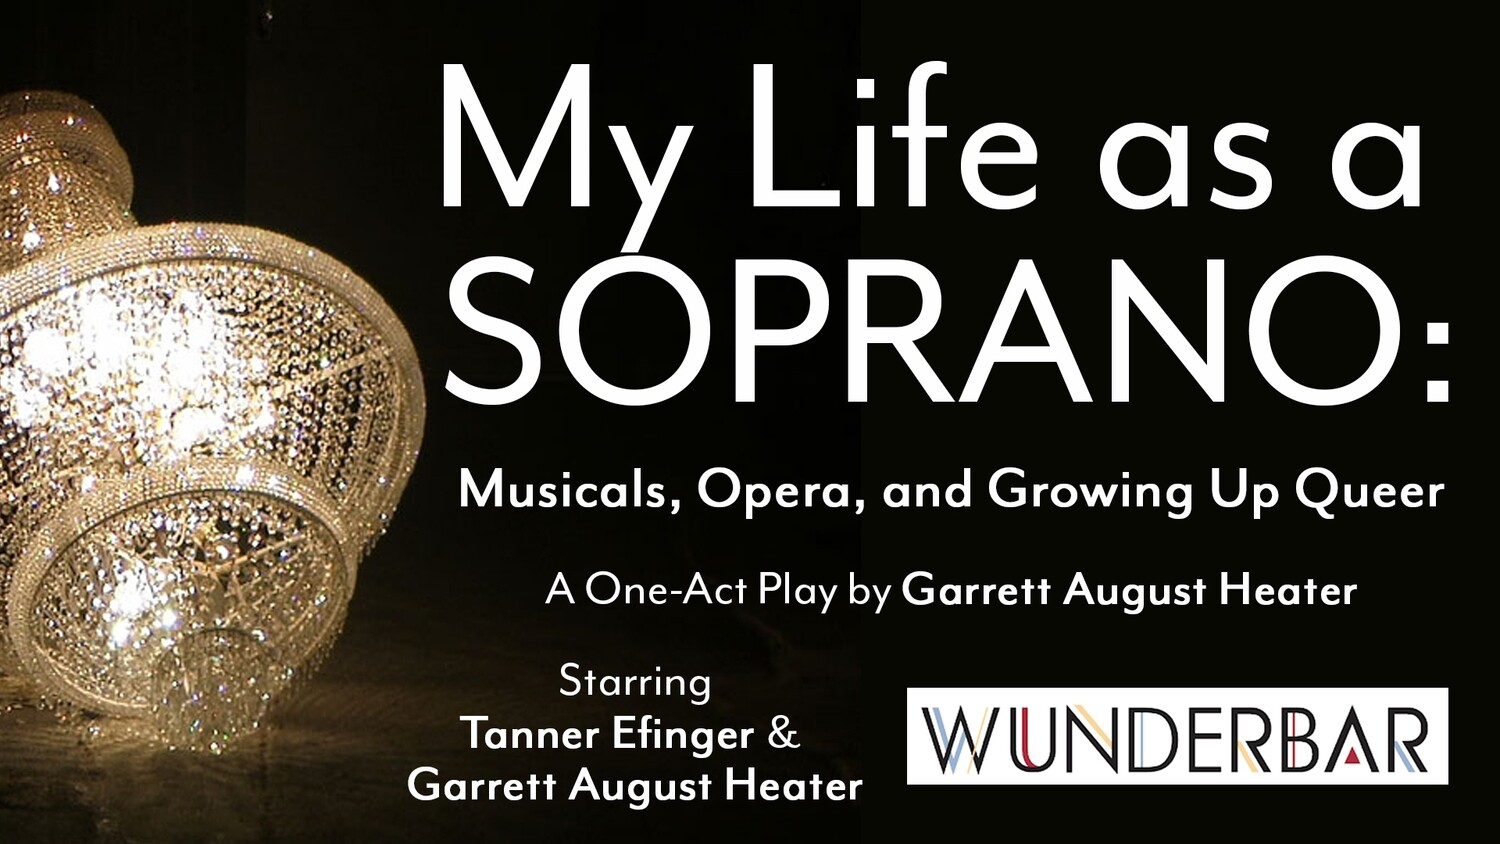 My Life as a Soprano - MAY 1